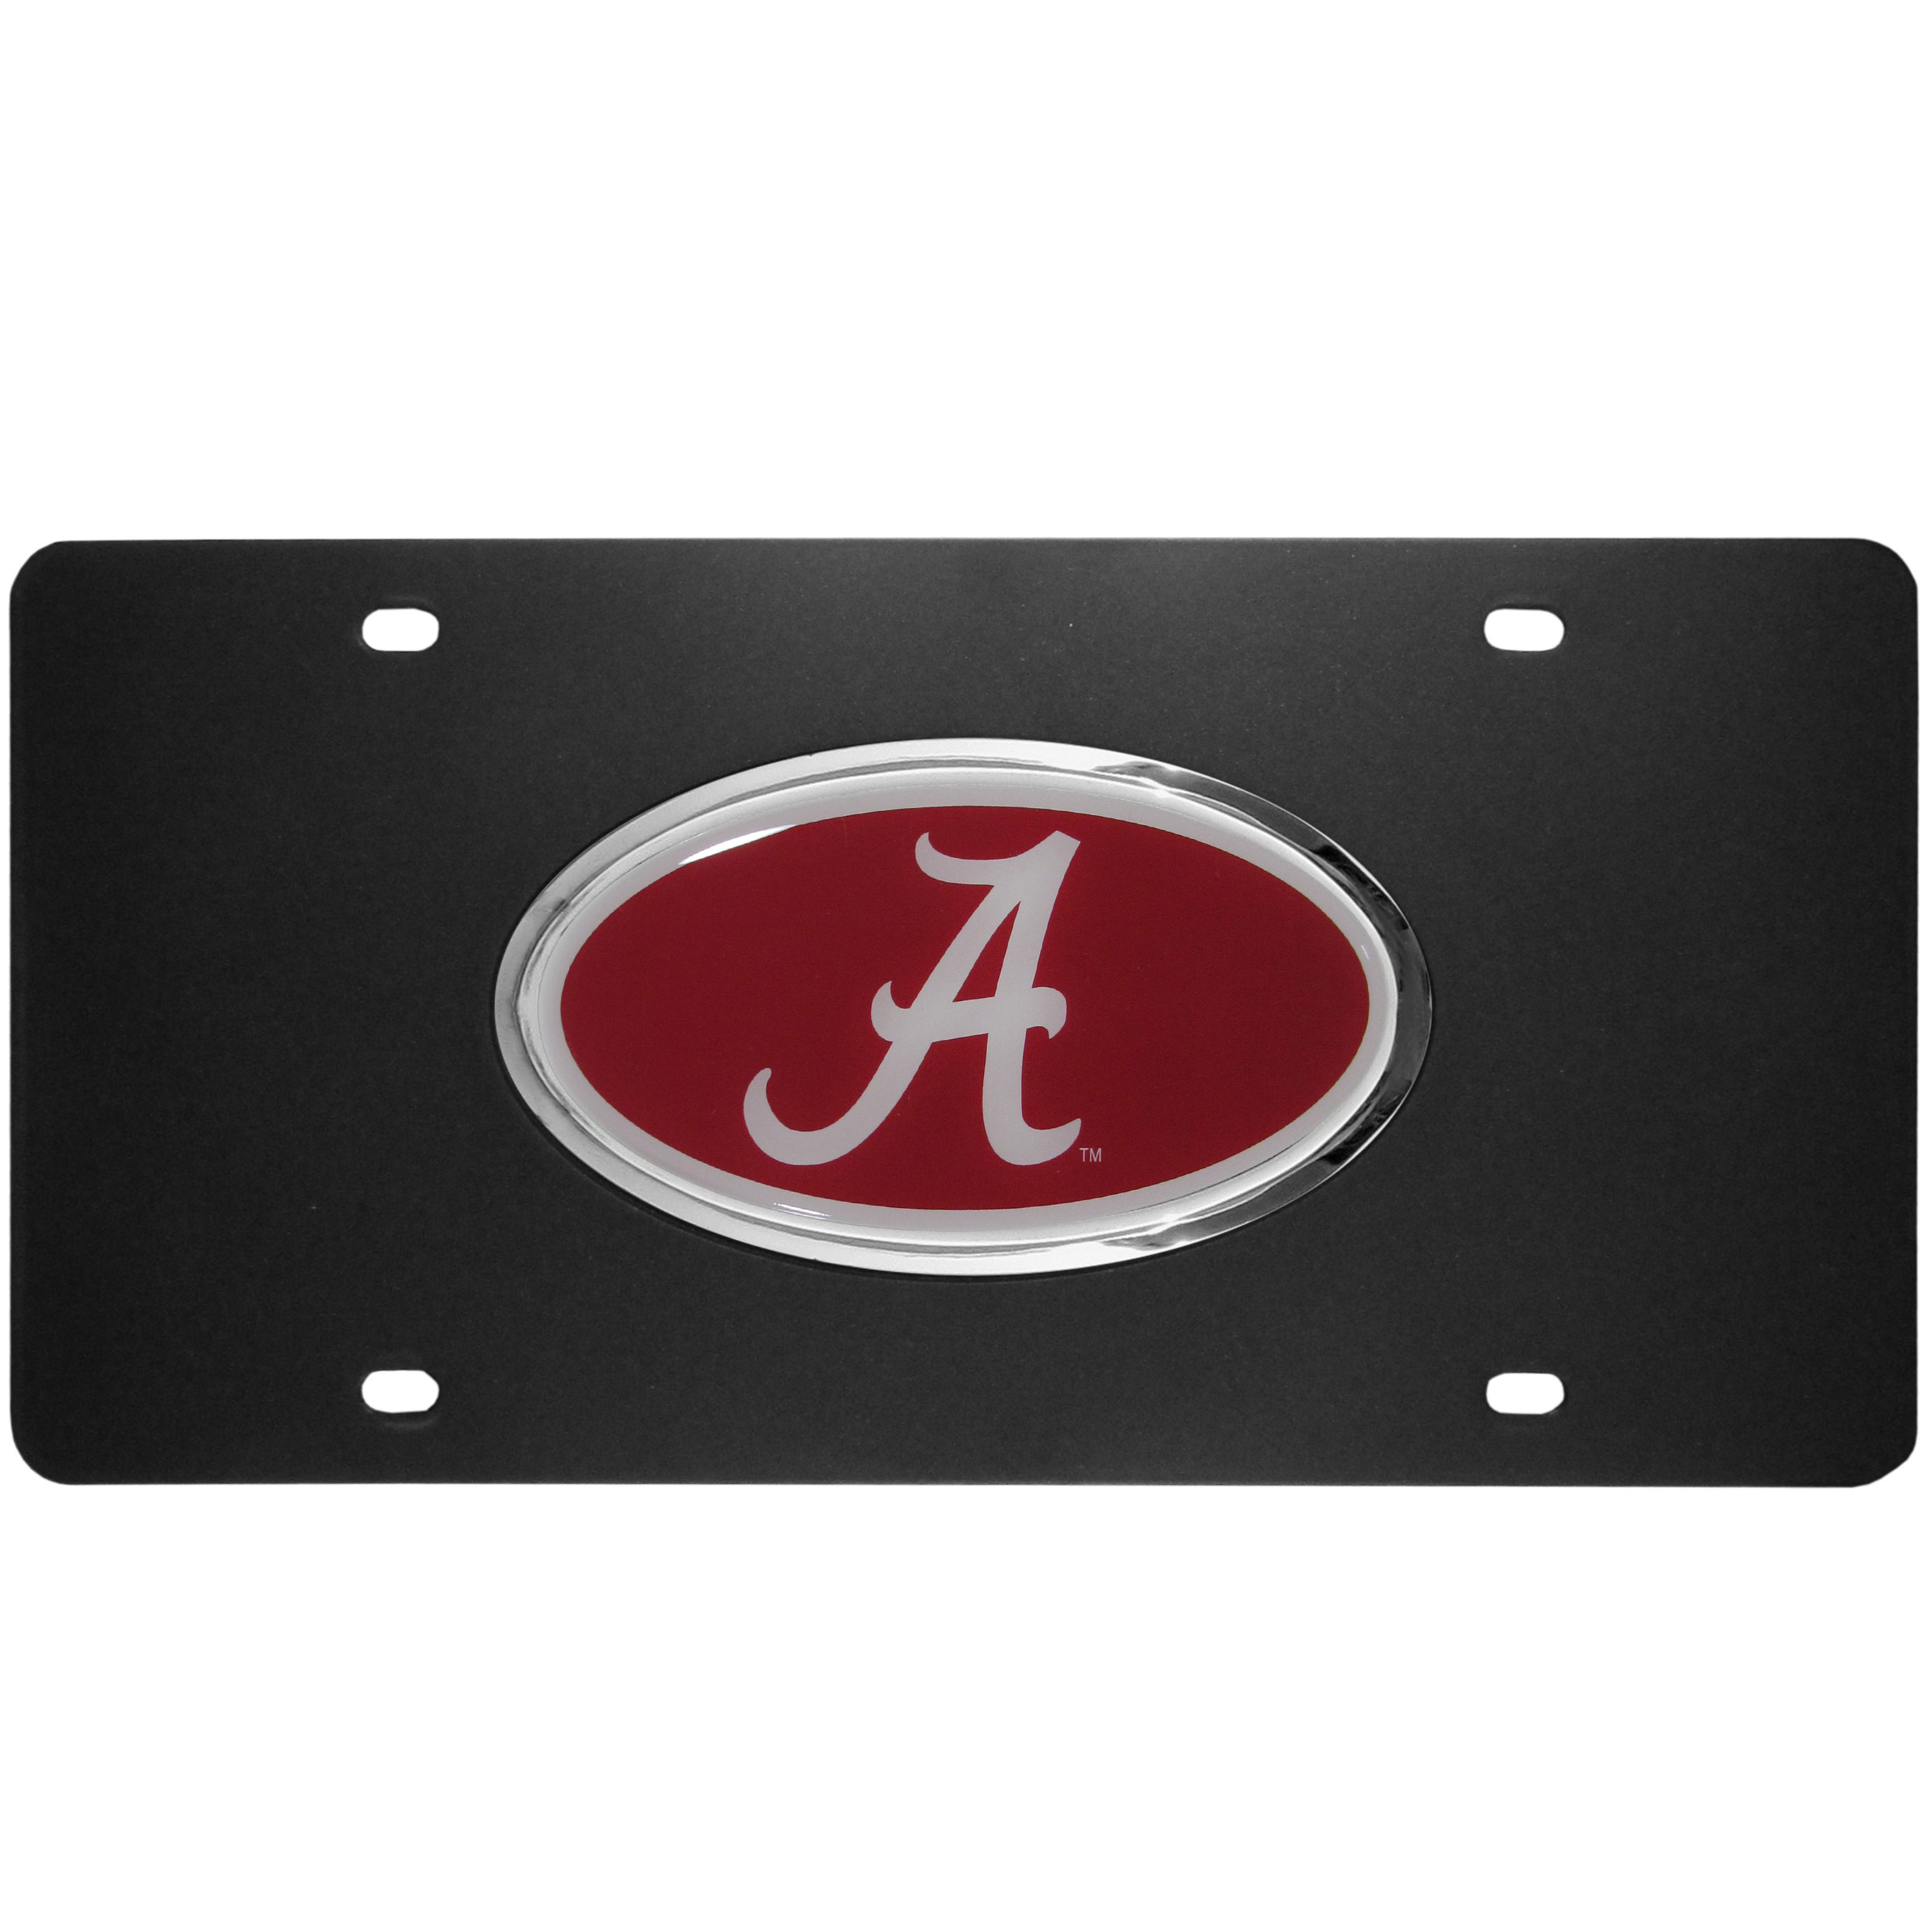 Alabama Crimson Tide Acrylic License Plate - Our Alabama Crimson Tide acrylic license plate is a step above the rest. It is made of thick, durable acrylic with a matte black finish and raised chrome saddle for the extra large team emblem.